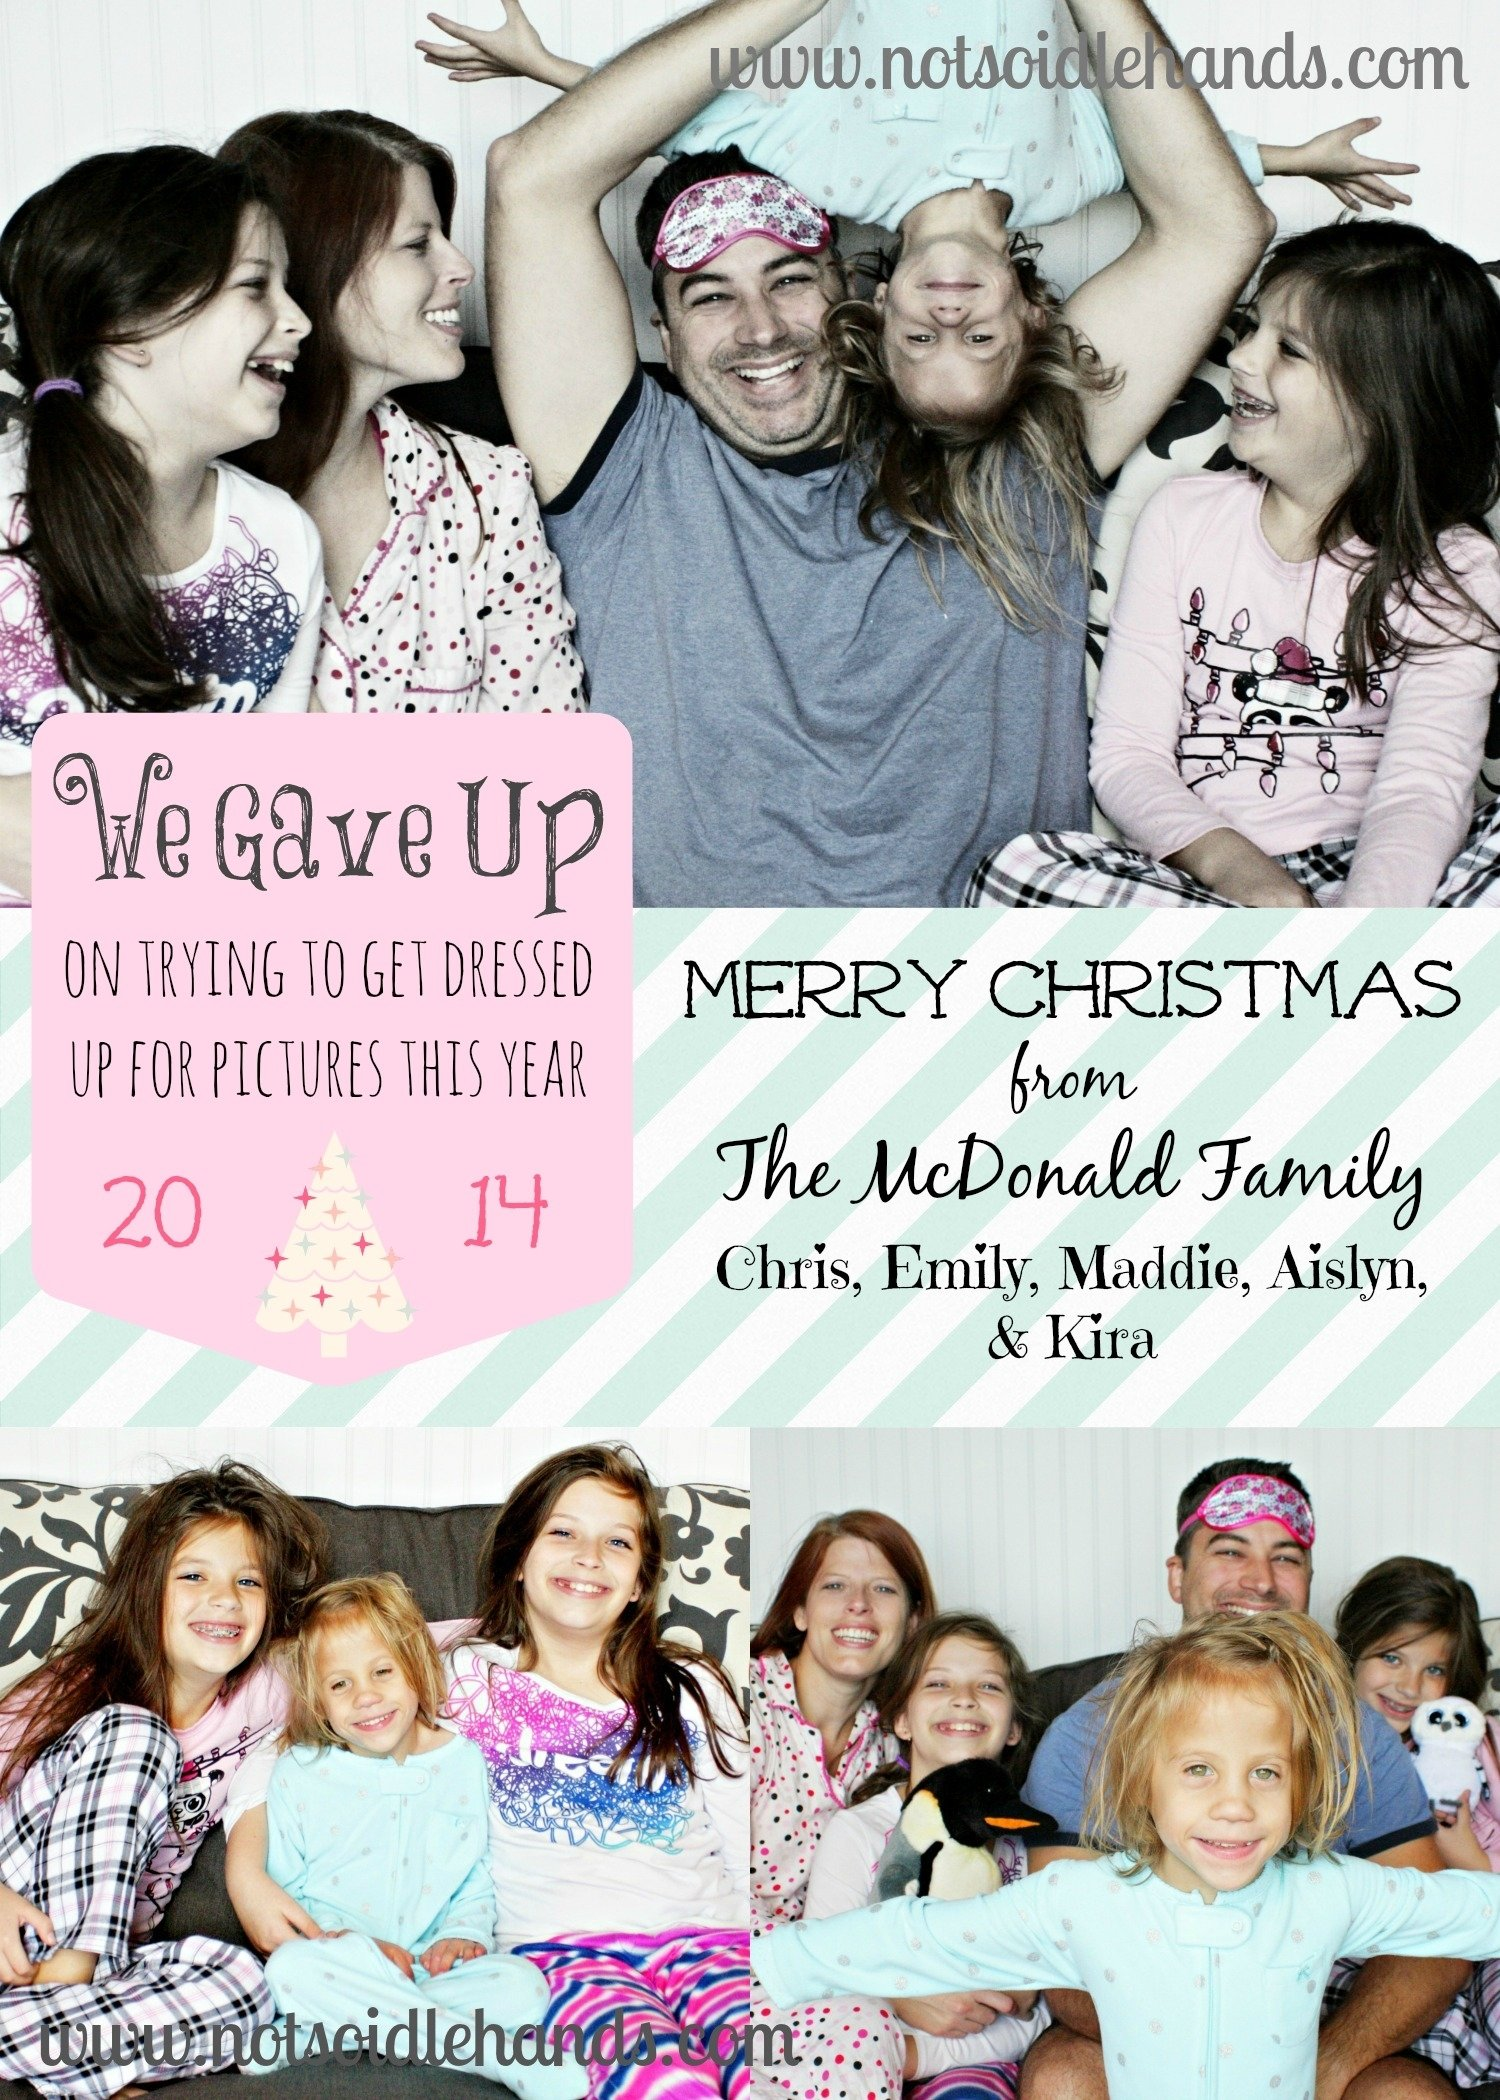 10 Unique Christmas Card Family Photo Ideas exquisite concept ny along with poses card photo ideas to 2020